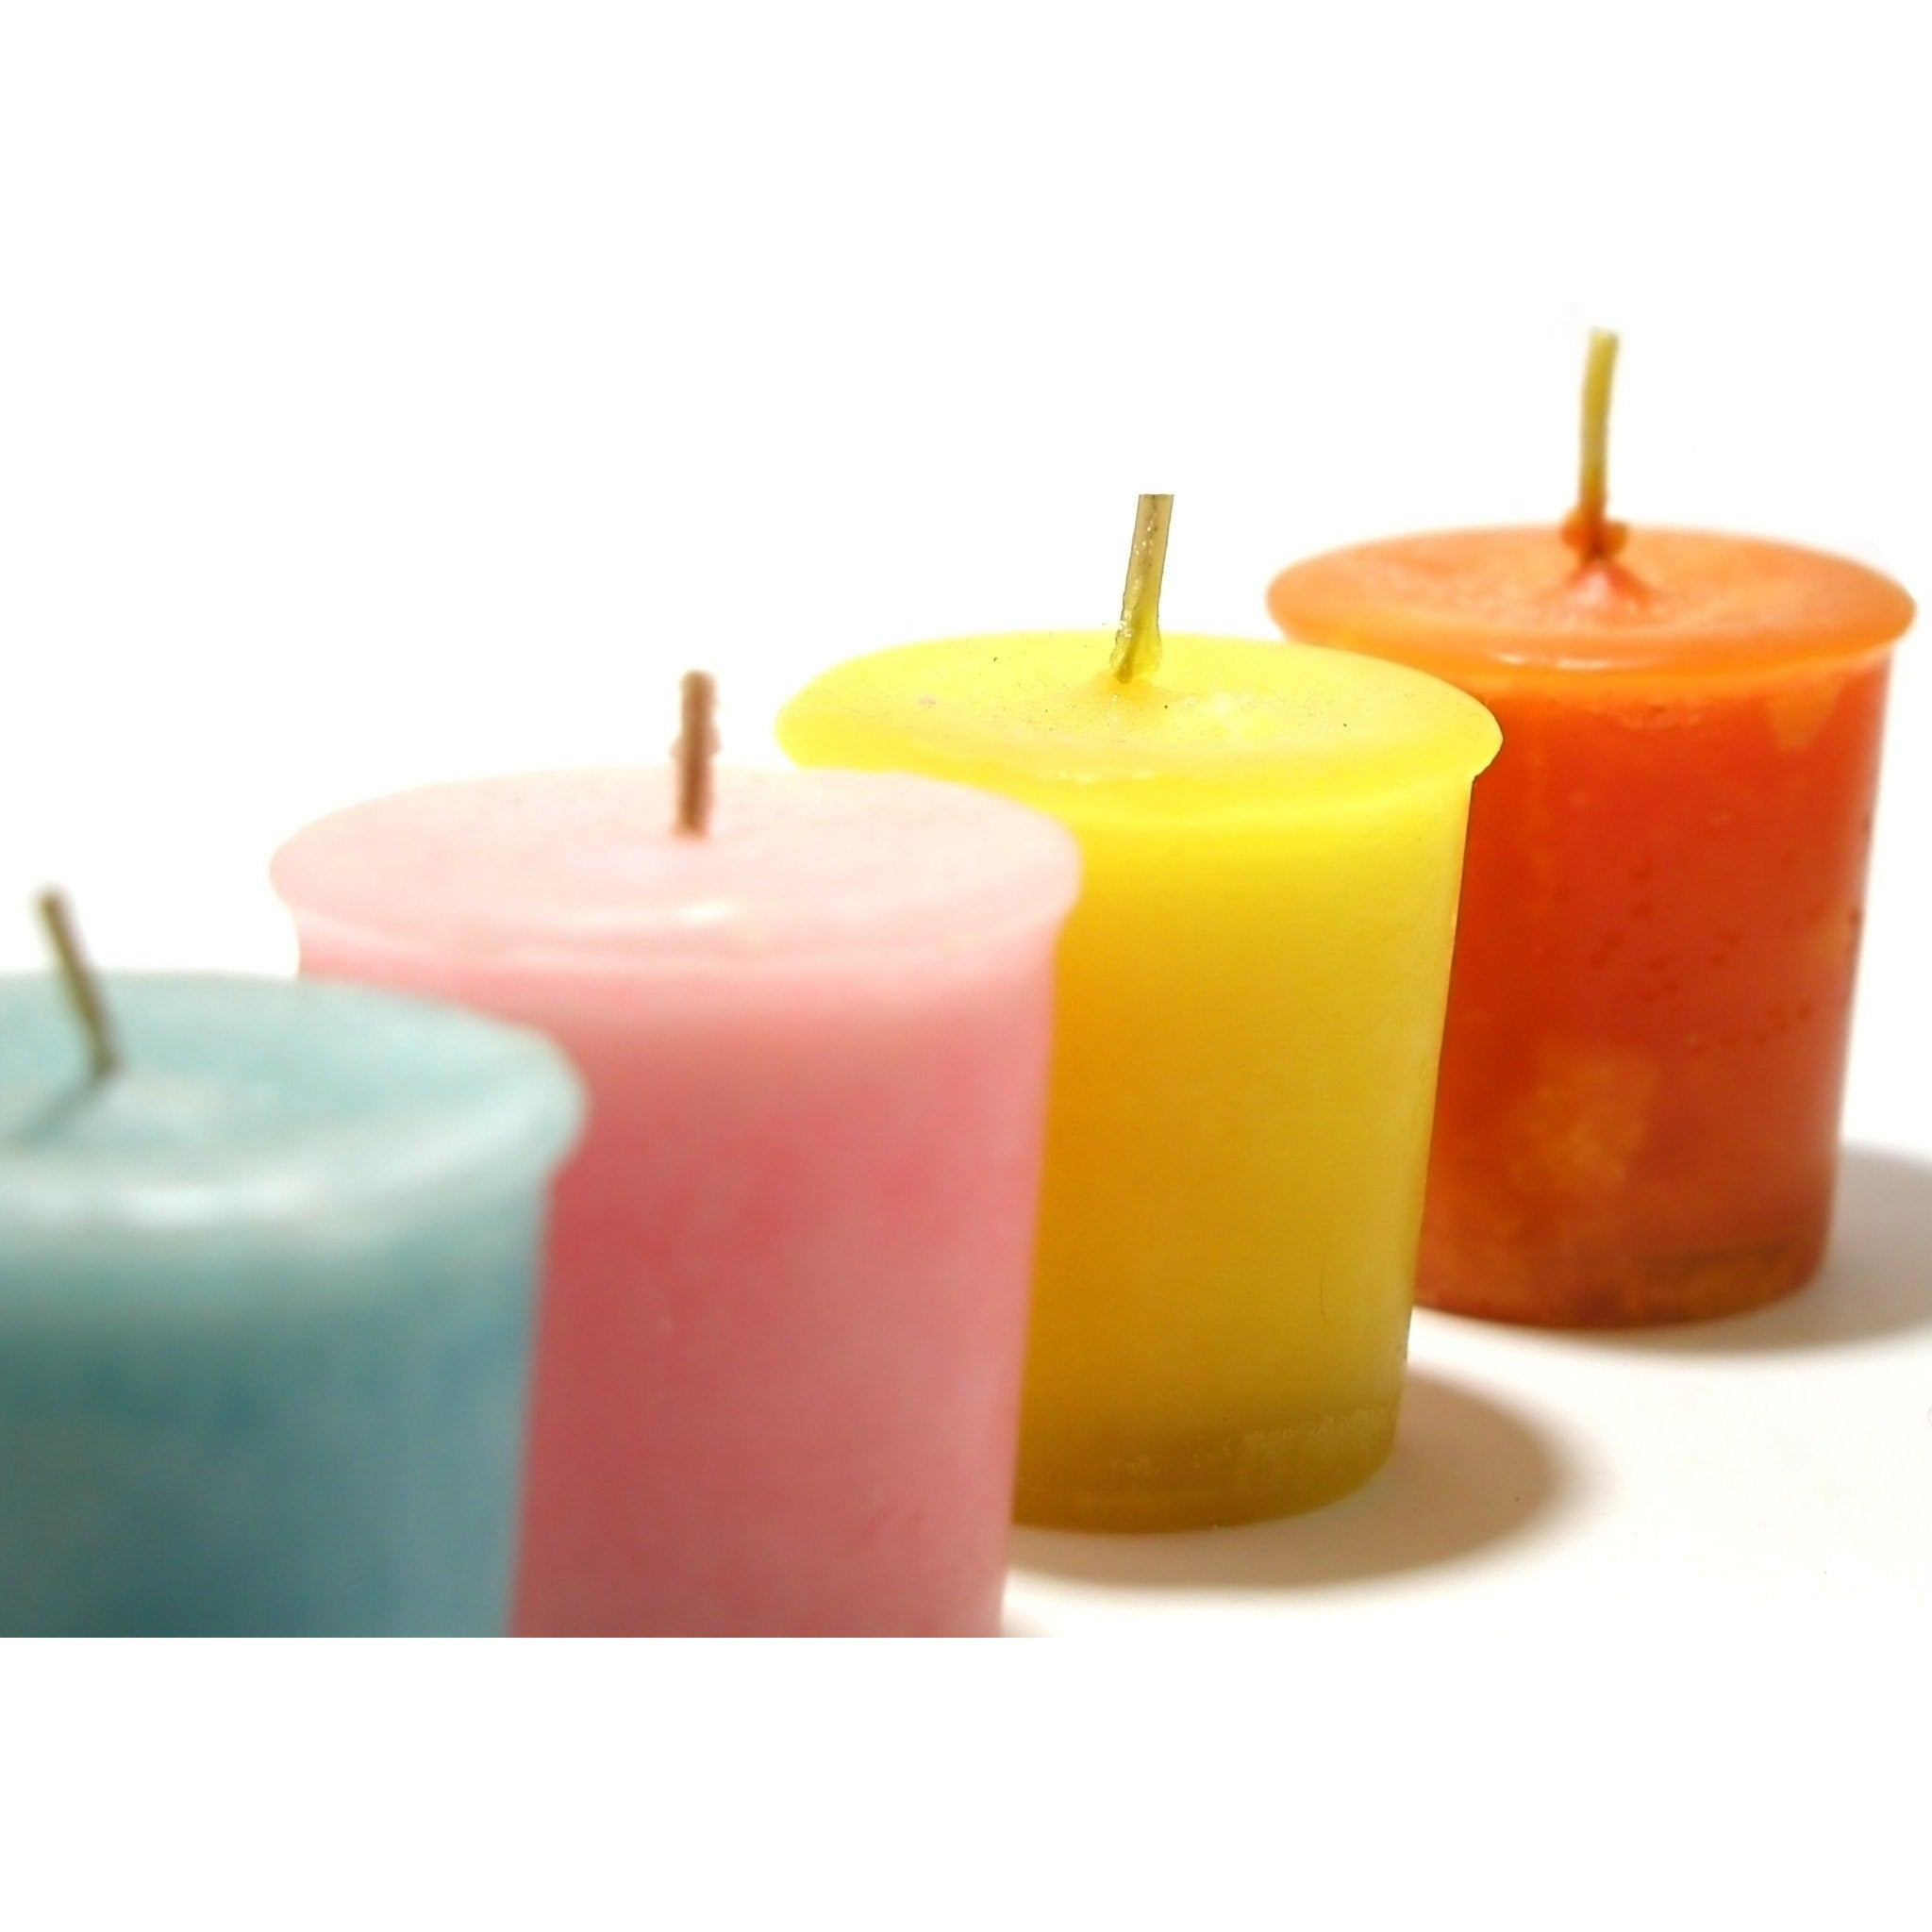 Calming Cucumber-Melon Everyday Natural Soy Candles - Votive-Single - Bella-Mia Naturals All Natural Soy Candles & Lip Balms - 10